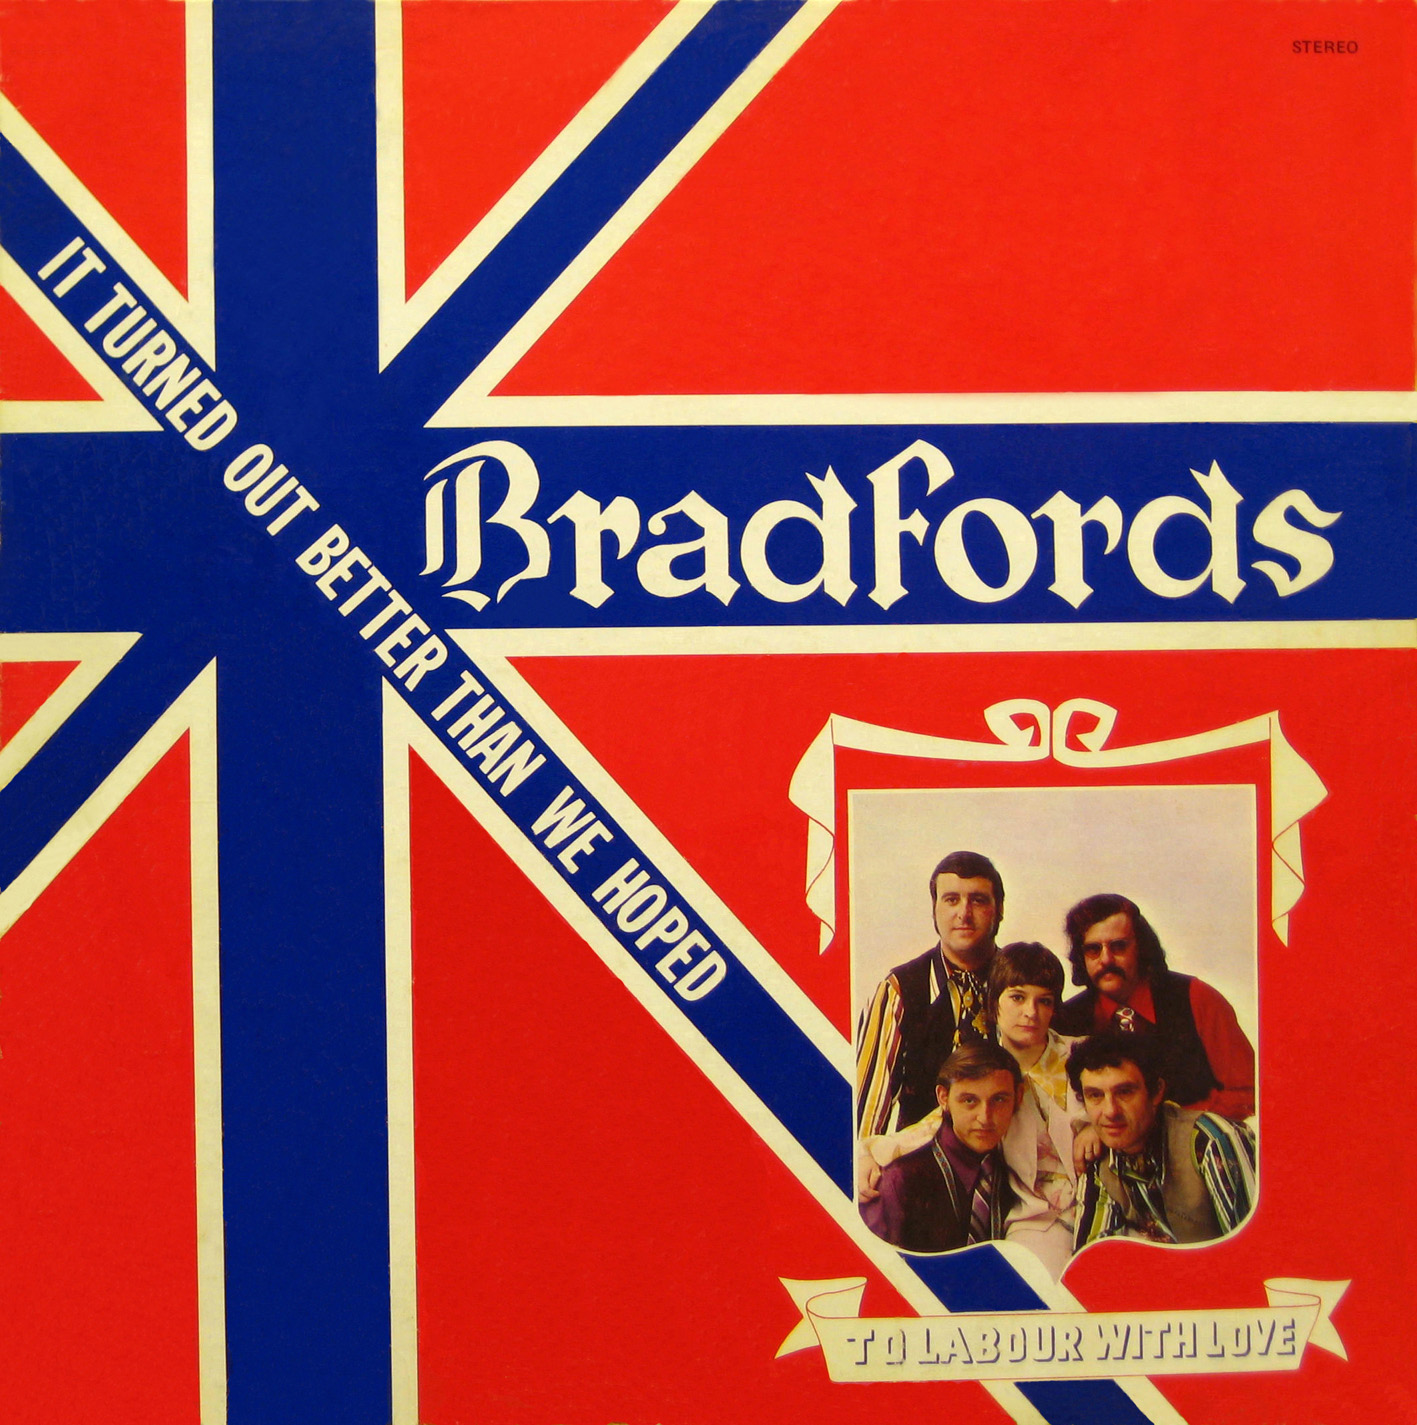 The Bradfords - It Turned Out Better Than We Hoped